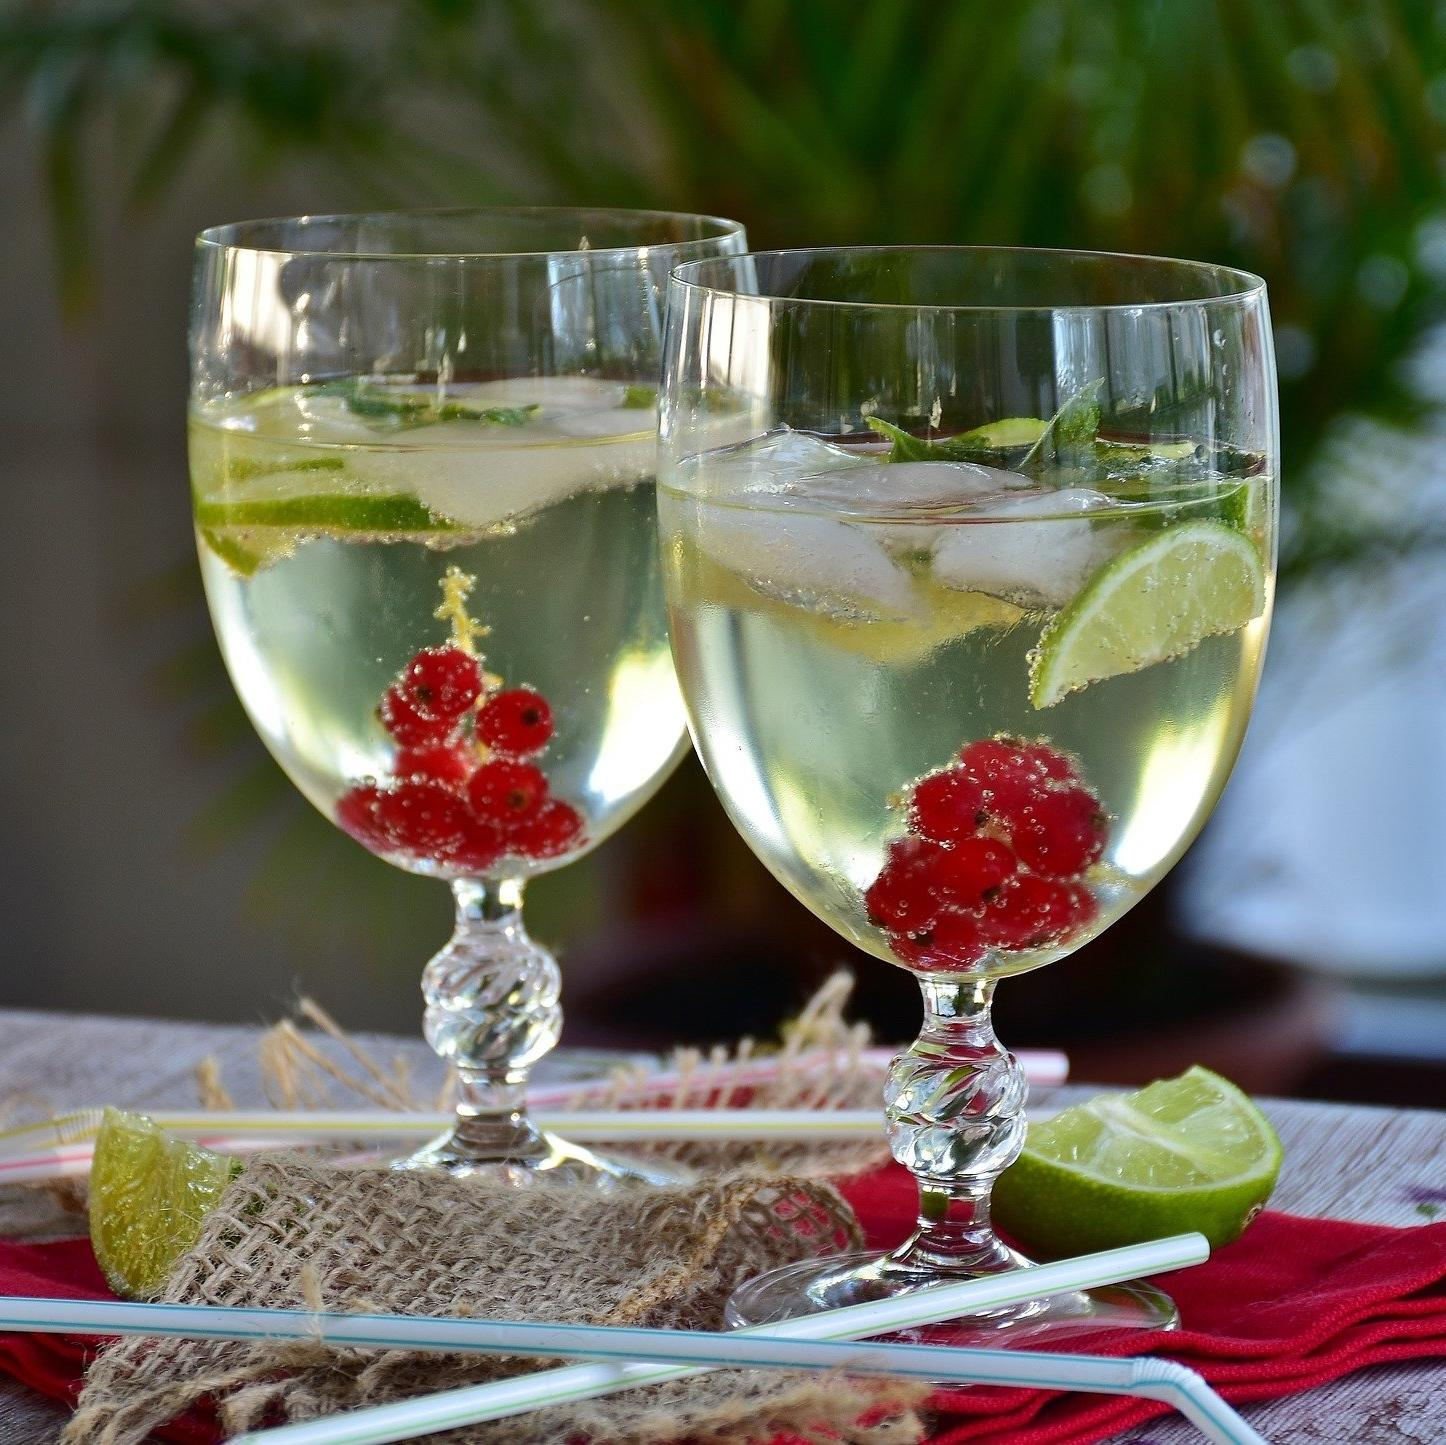 Glasses of carbonated elderflower cordial with added fruit